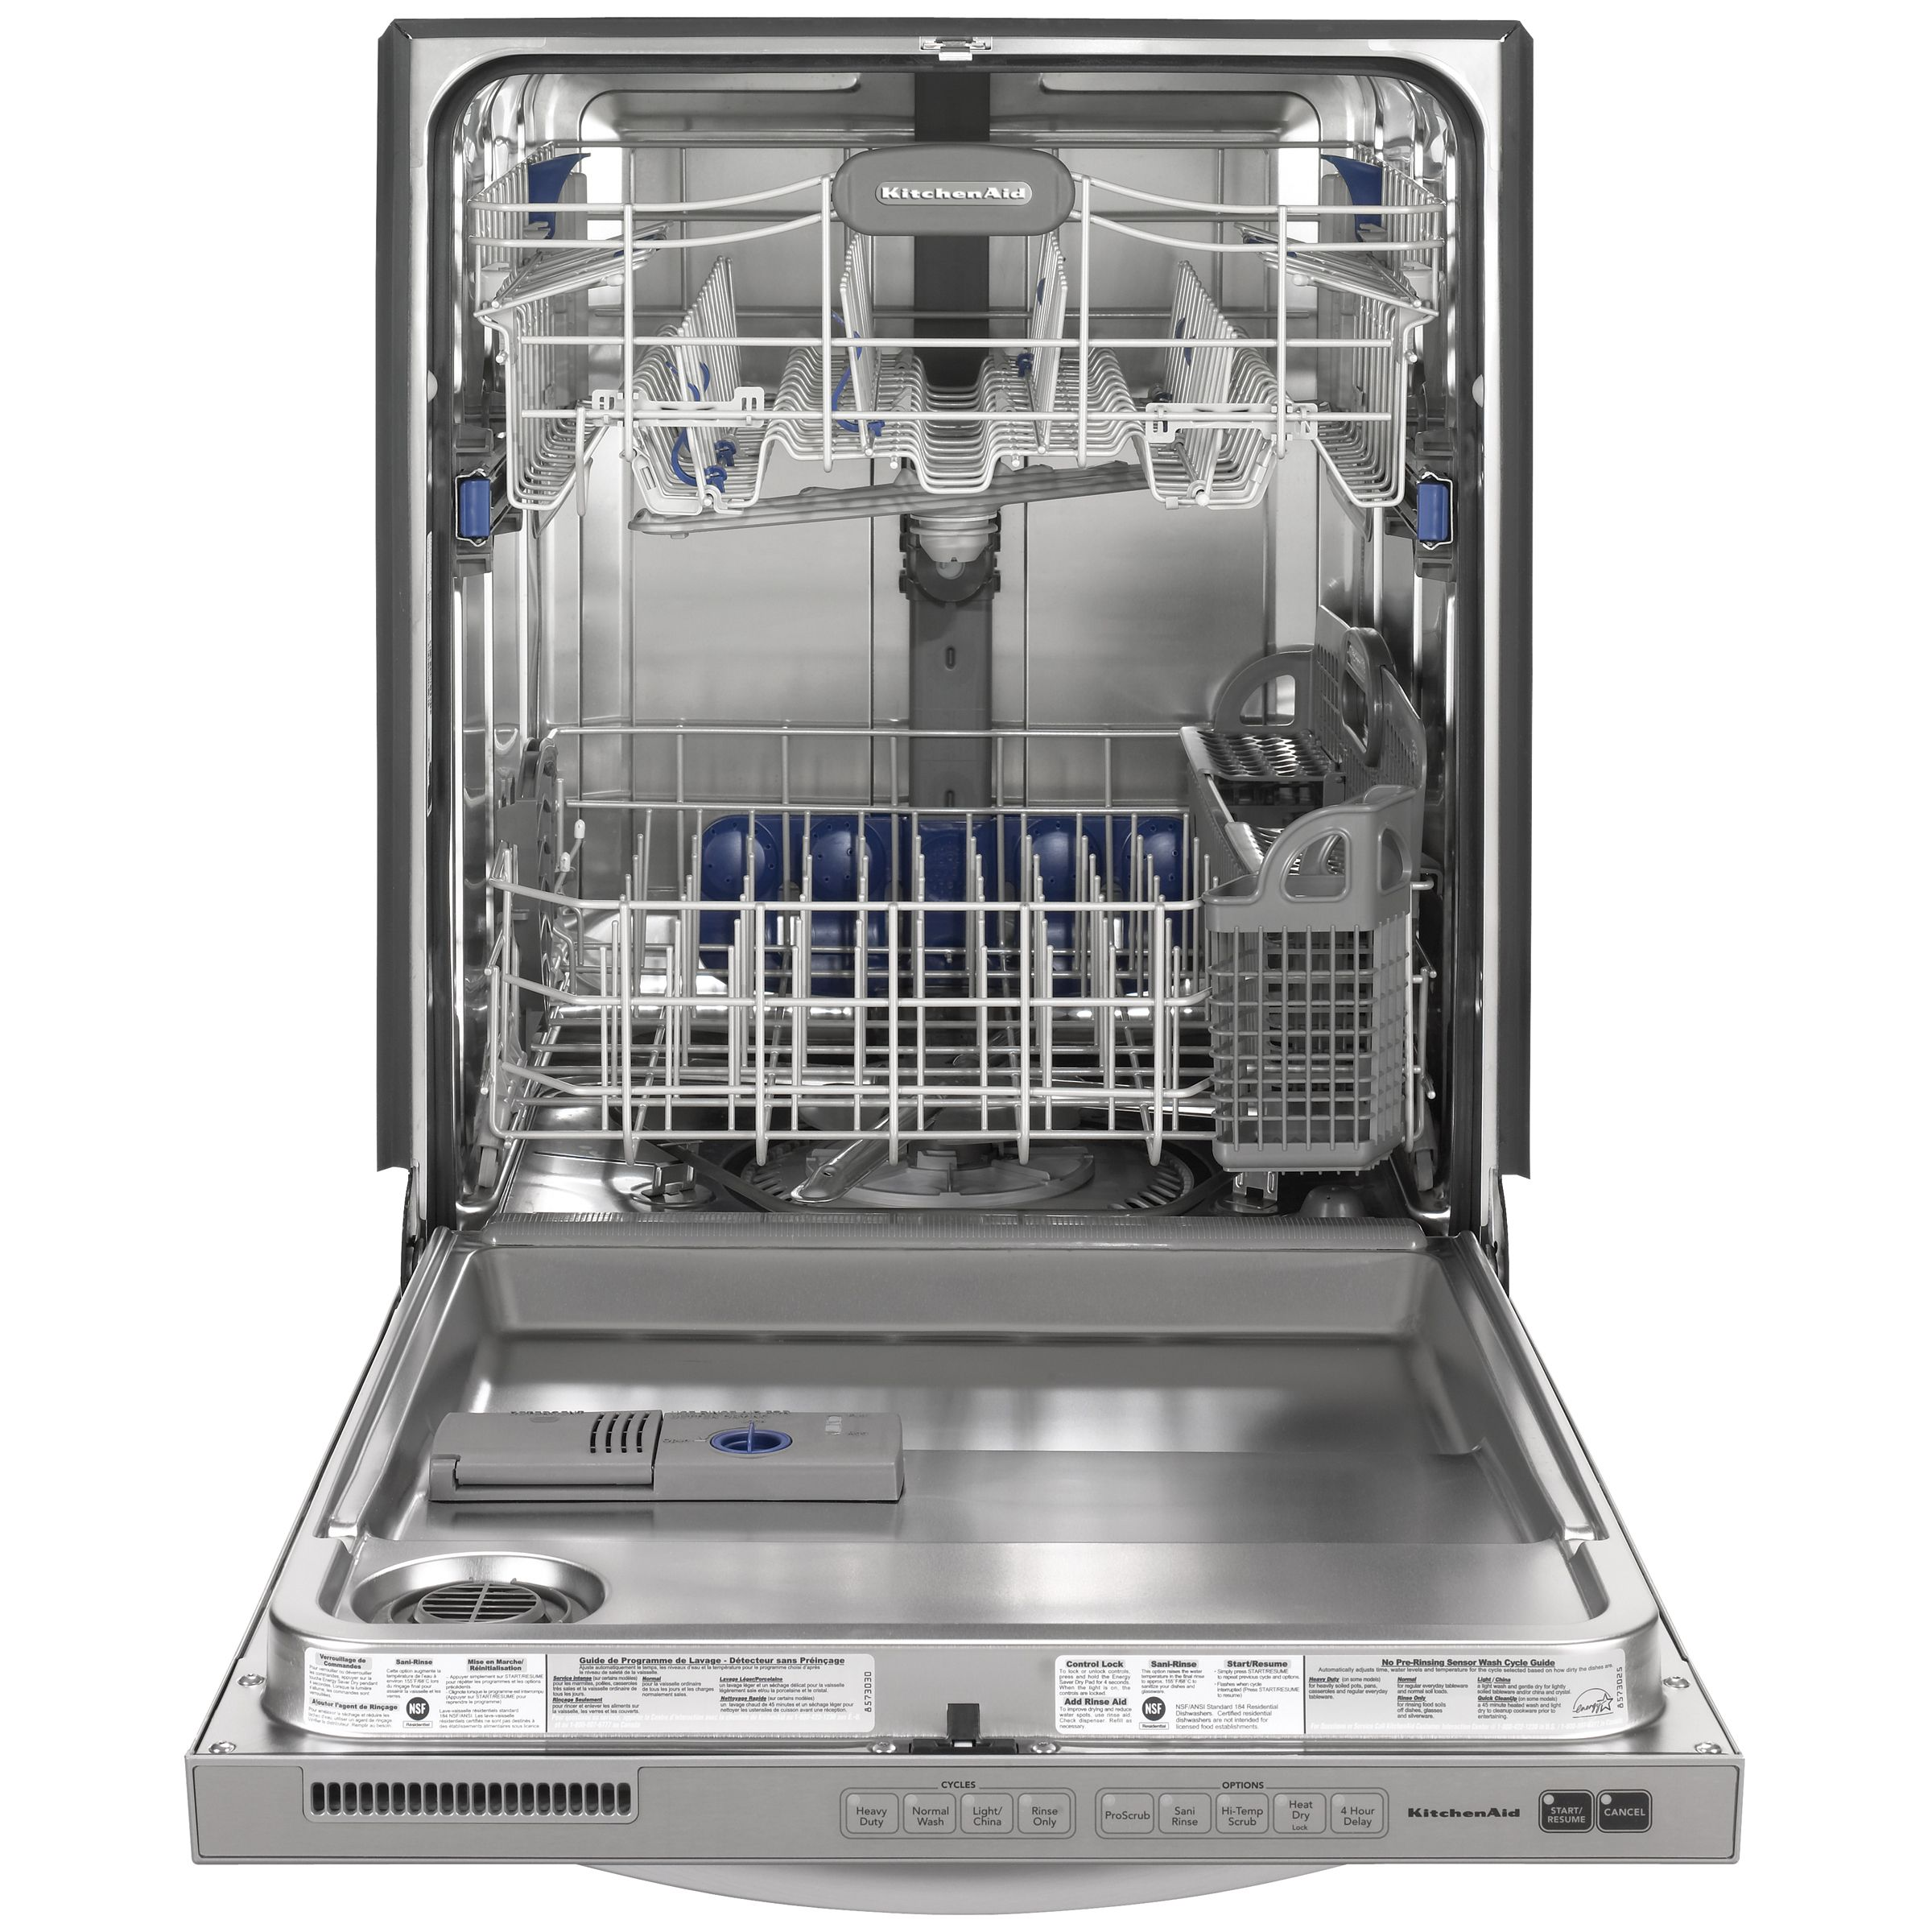 KitchenAid 24 in. Built-In Dishwasher w/ 3rd Level Rack